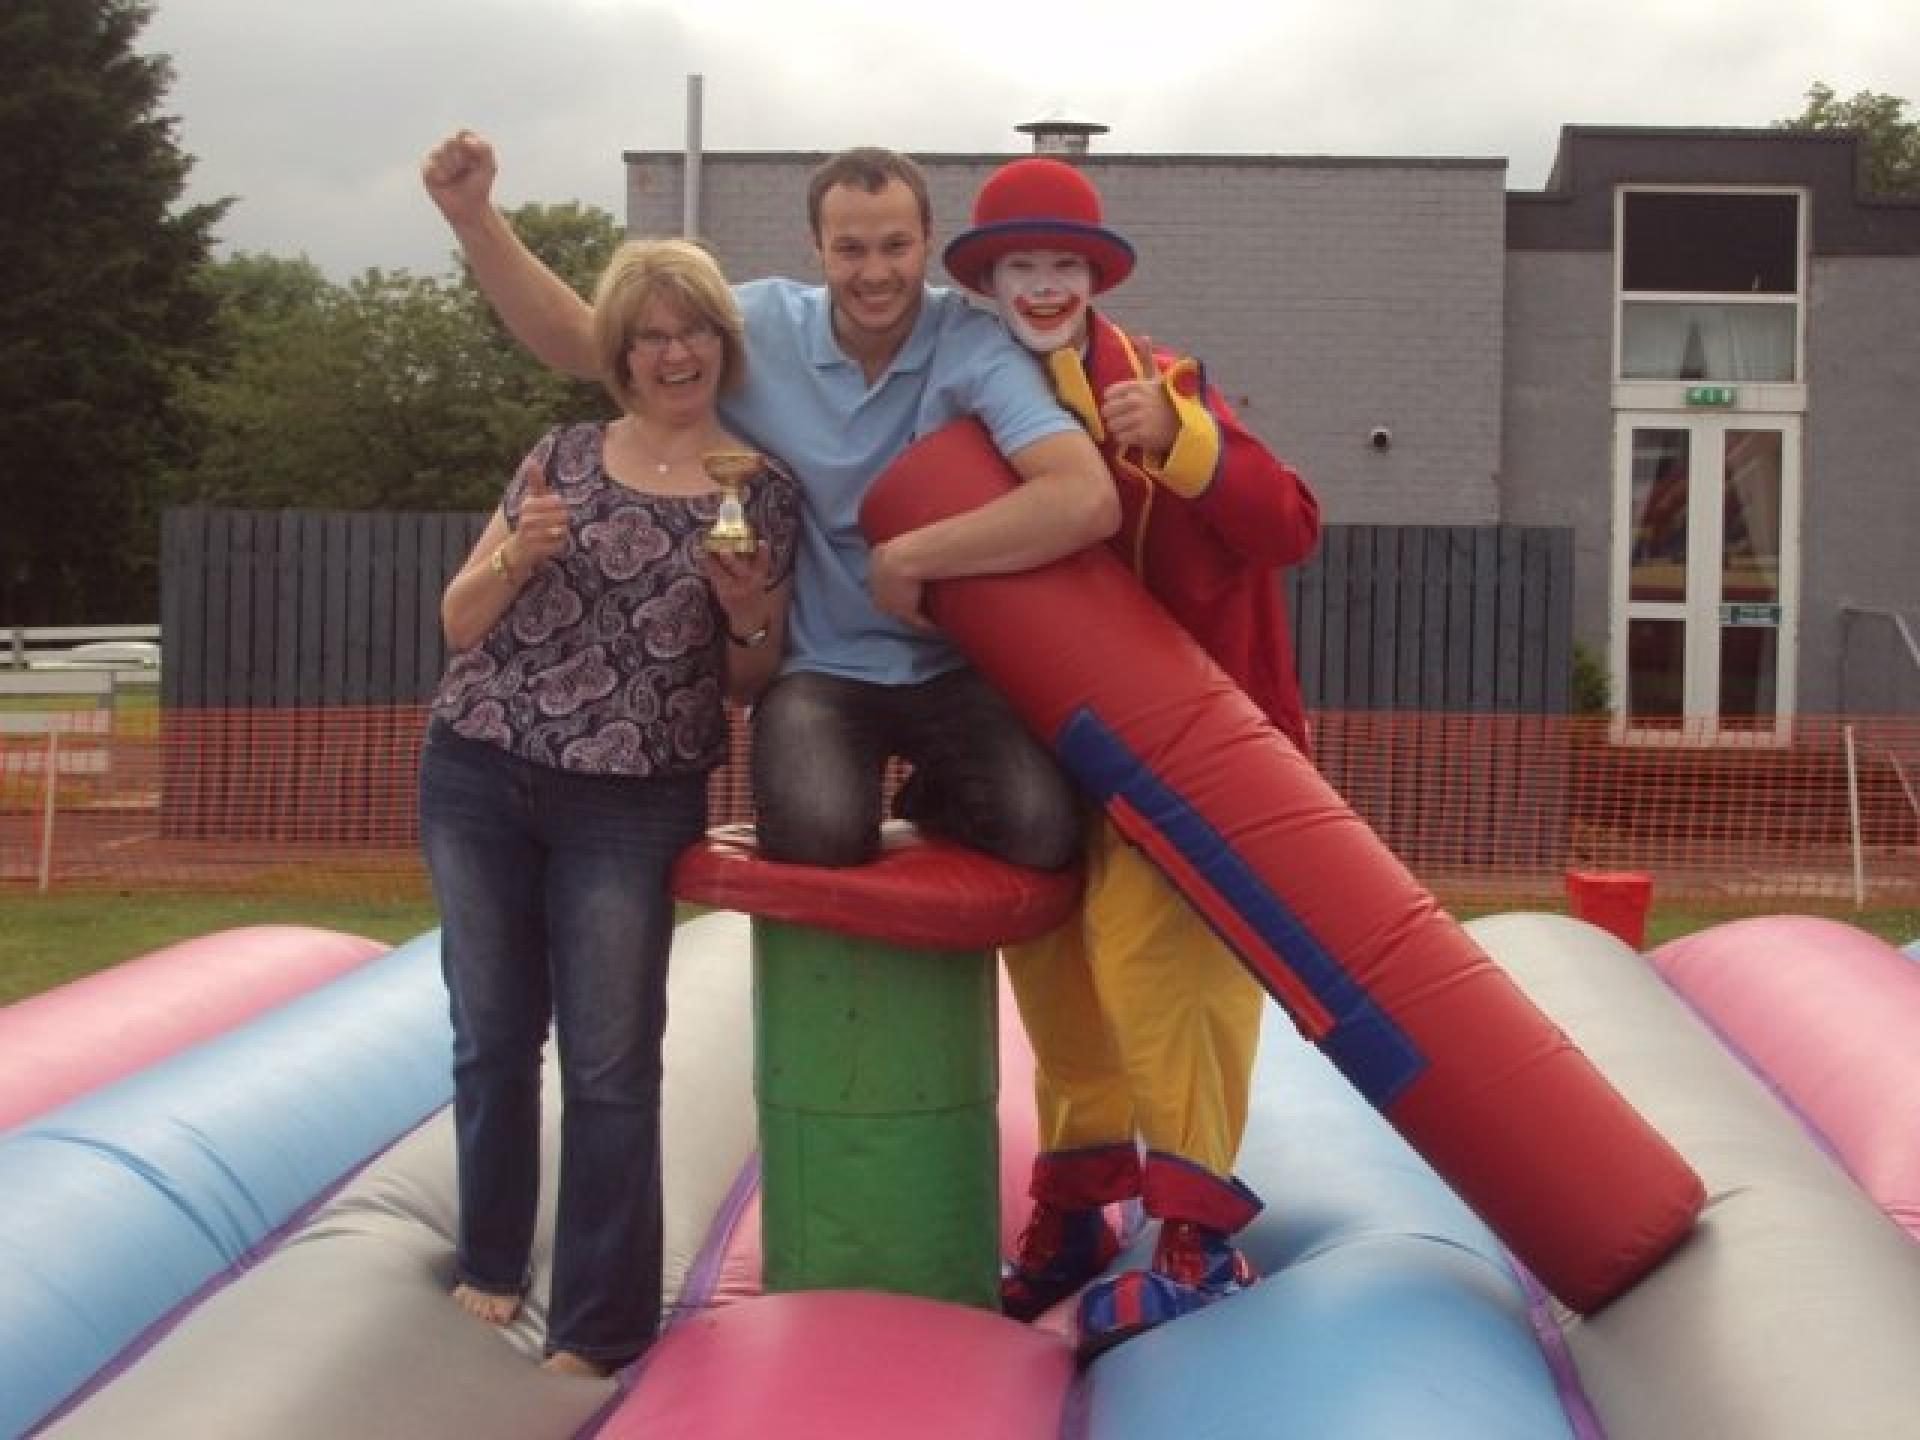 Inflatable Fun Corporate Family Fun Days Scotland